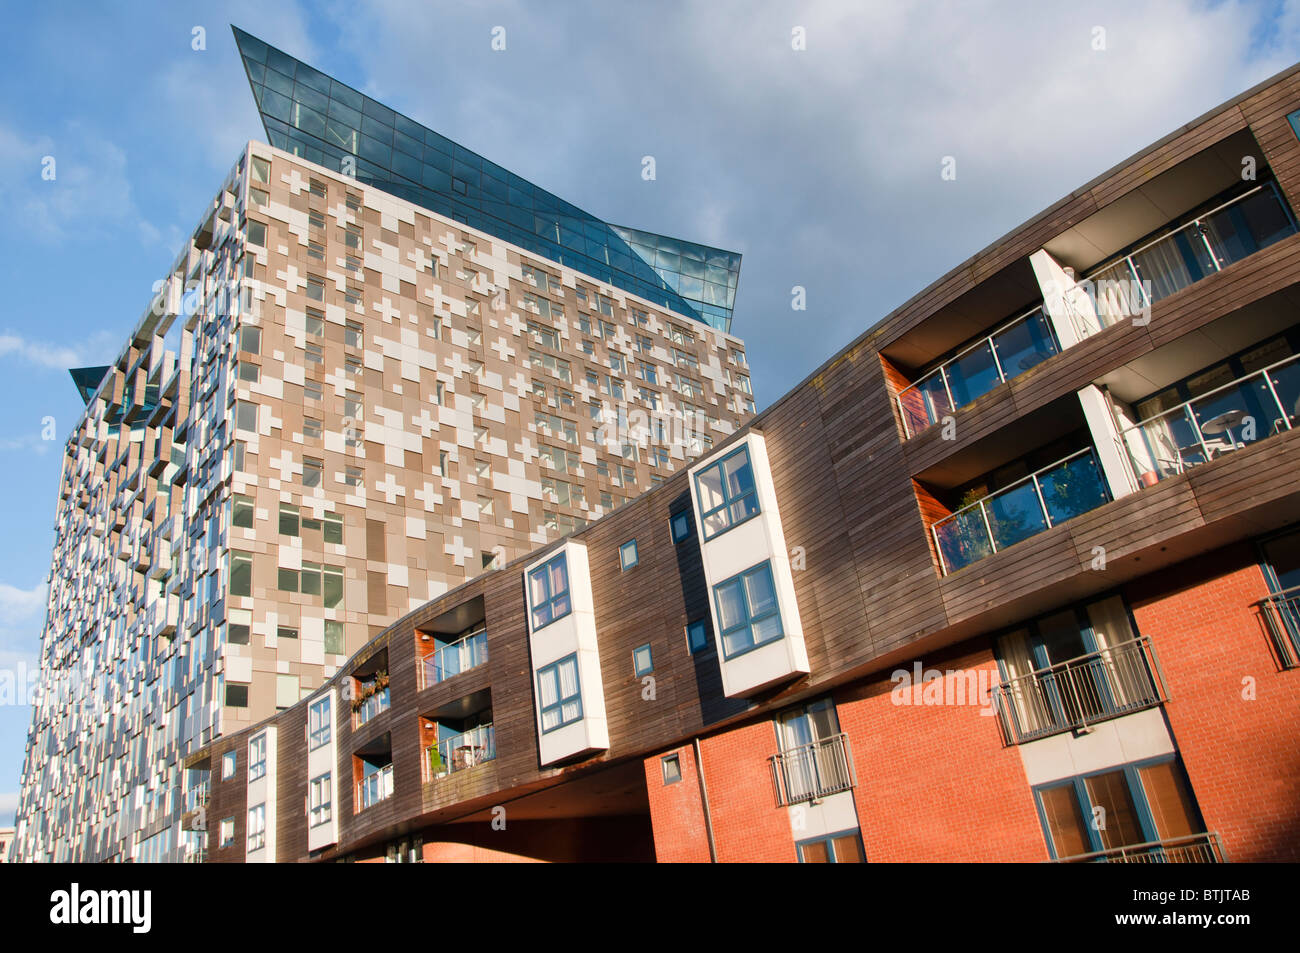 Apartments on the canal next to new 'Cube' building in Birmingham, UK - Stock Image